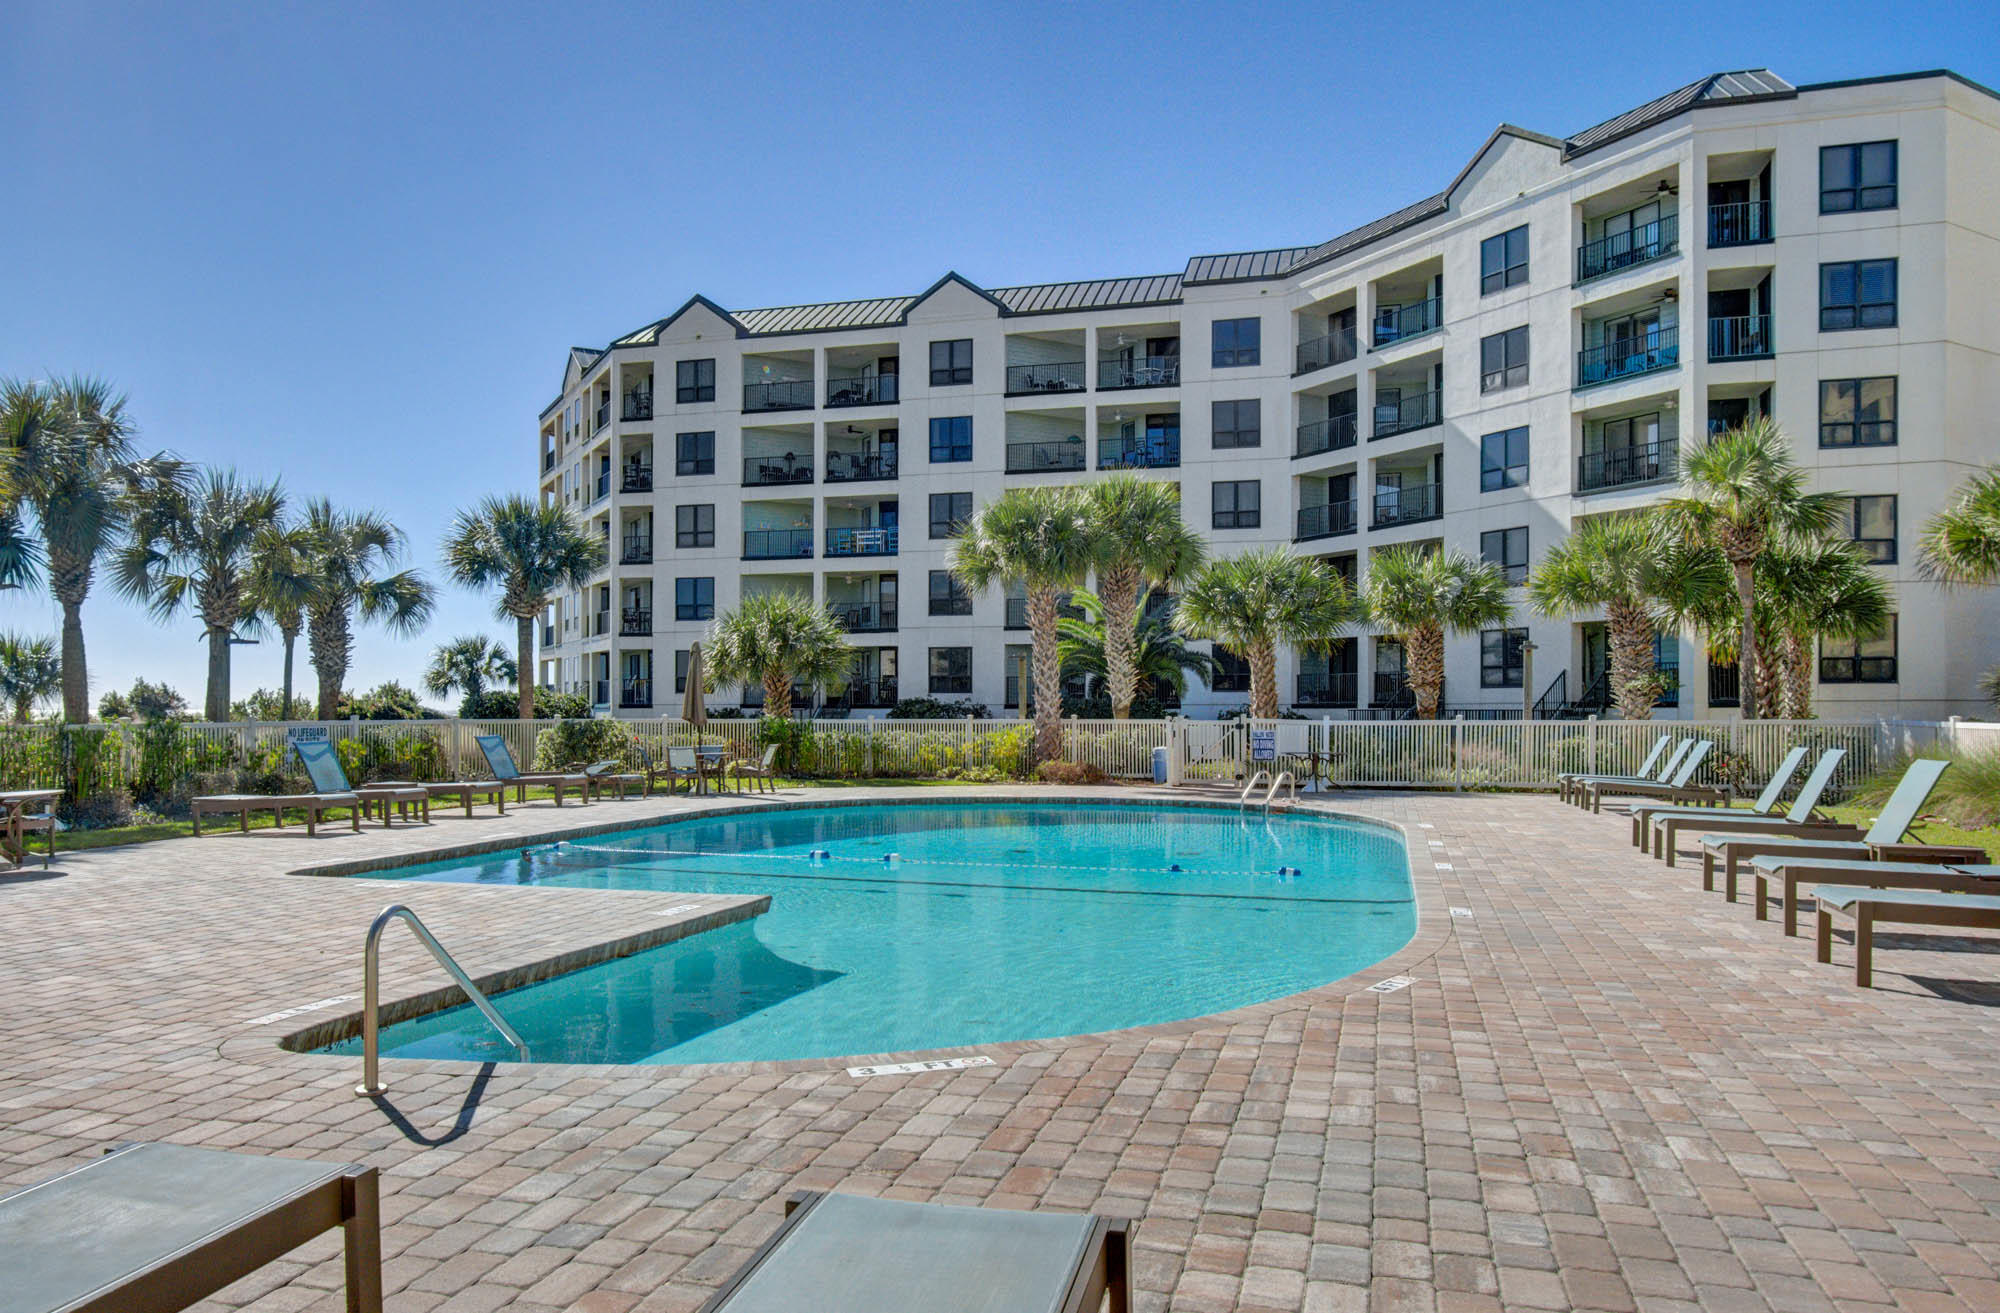 Wild Dunes Homes For Sale - 210 Summerhouse, Isle of Palms, SC - 5